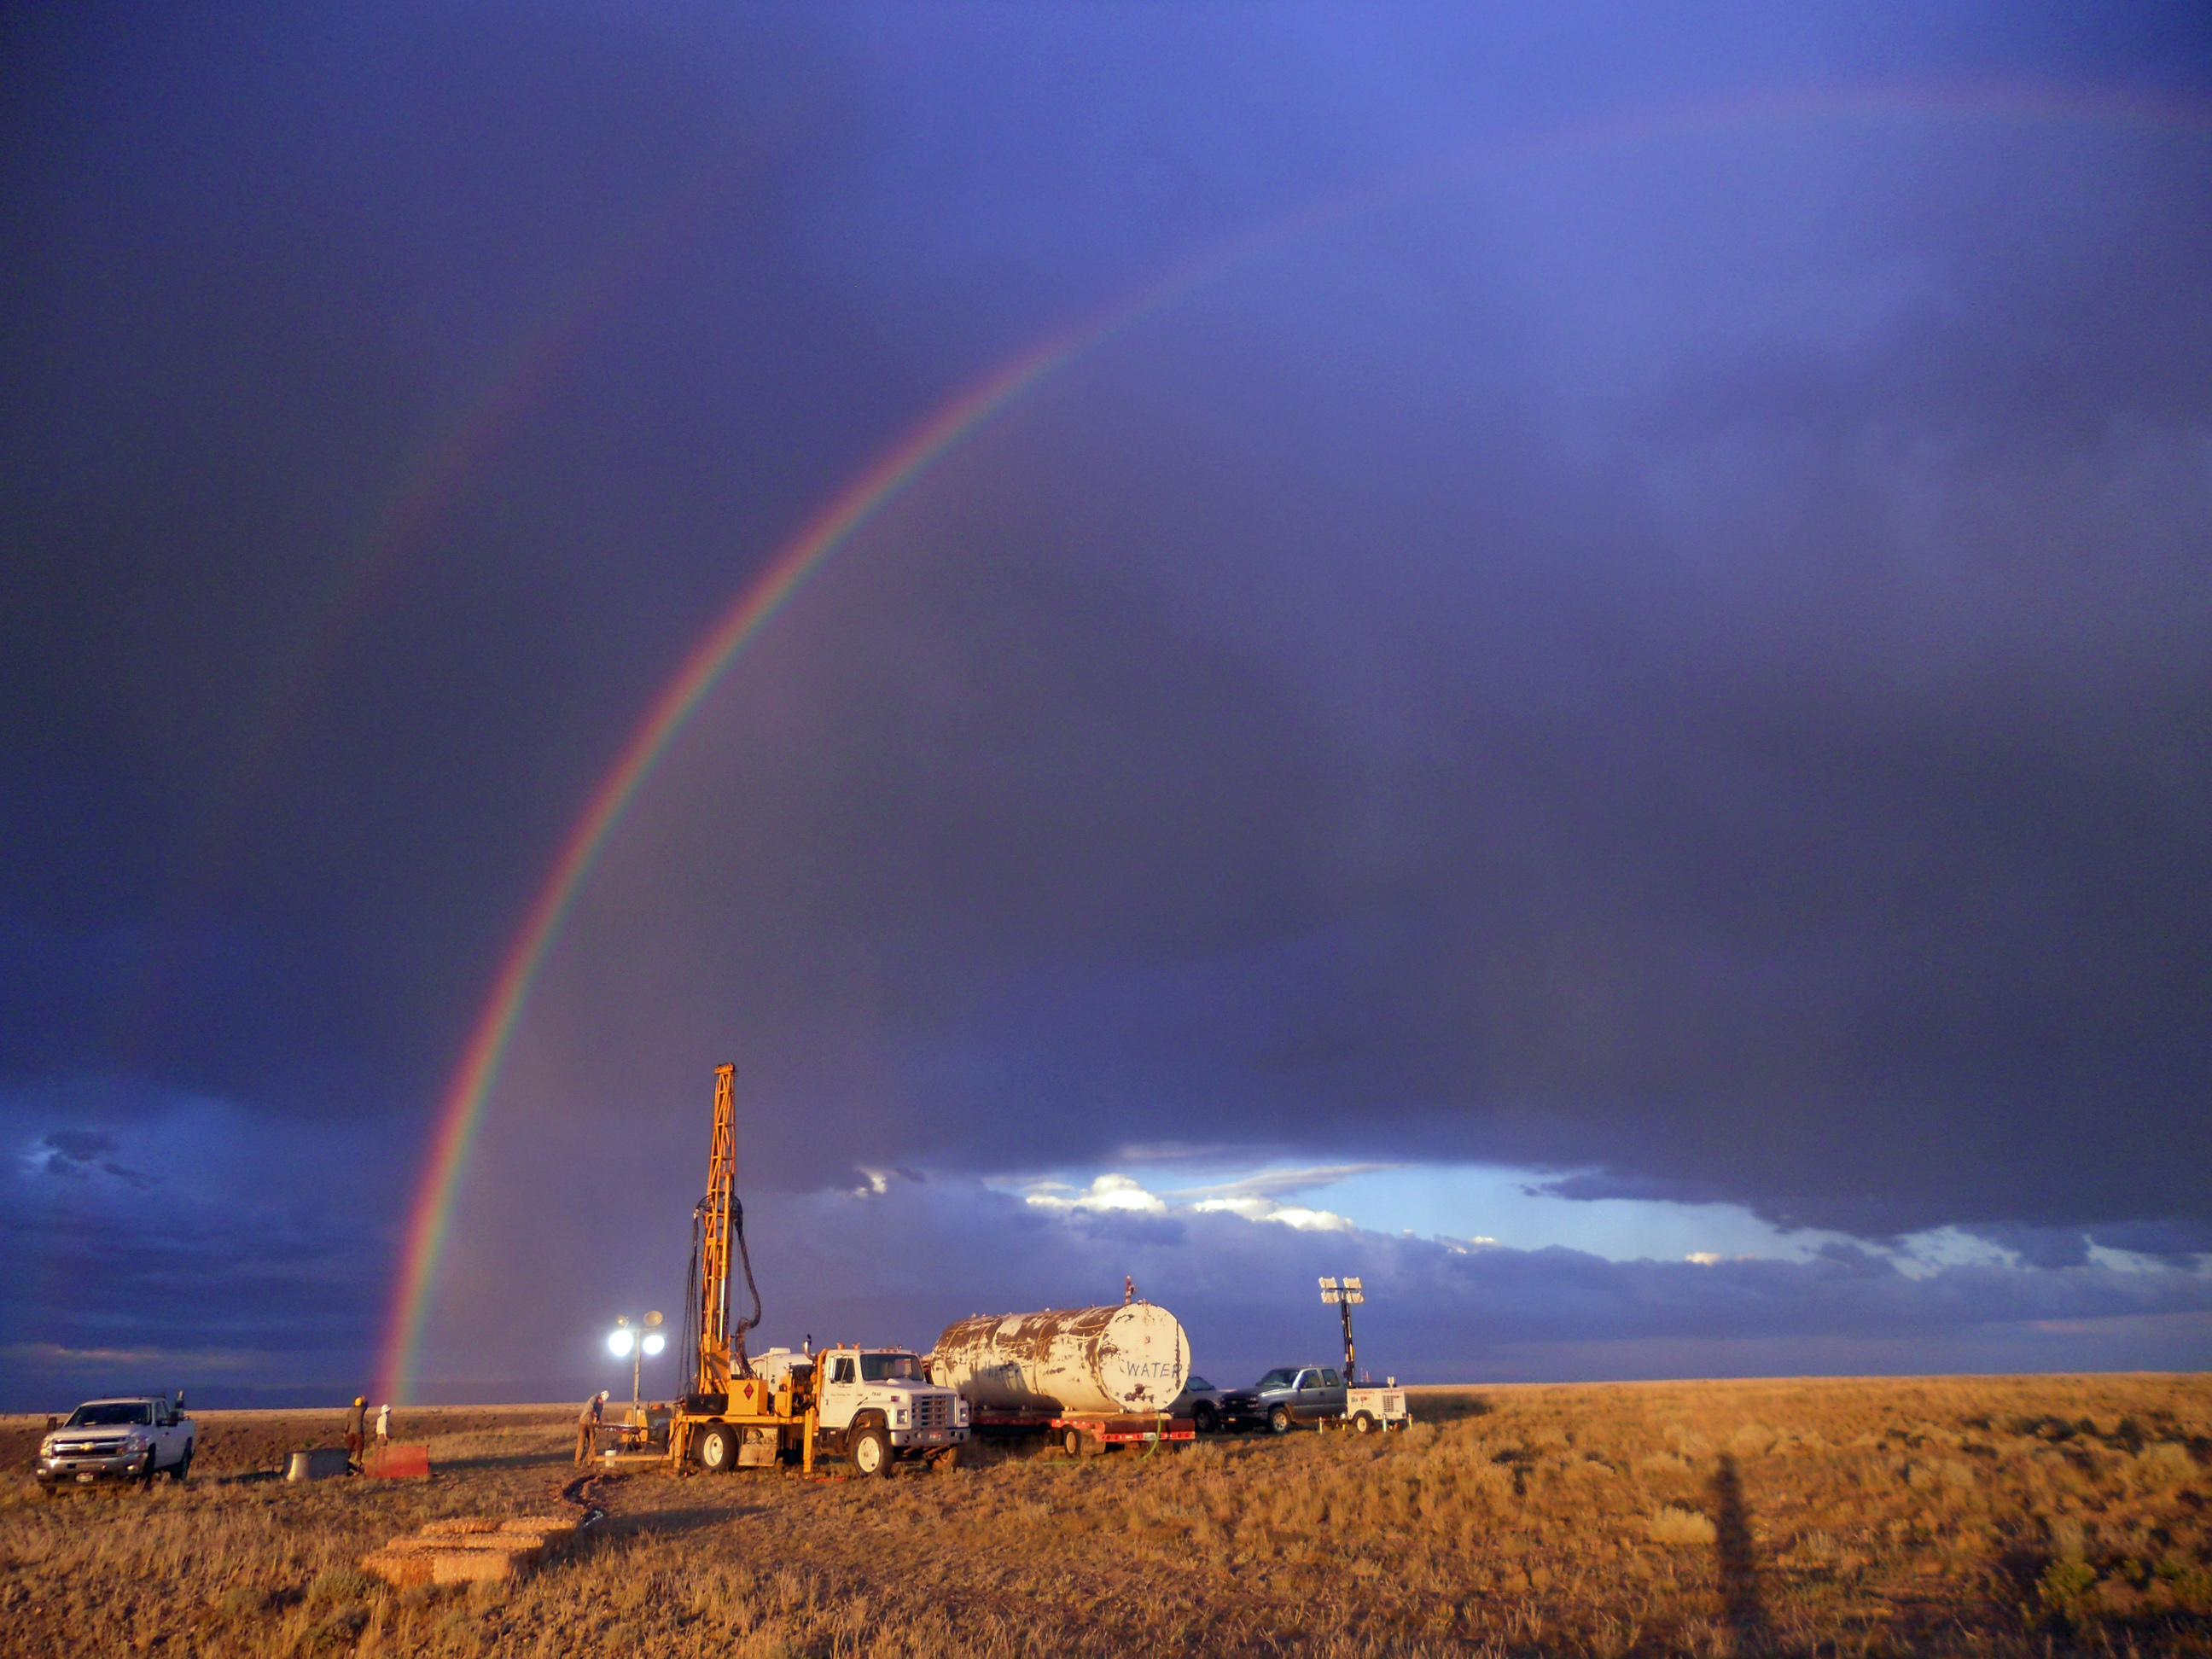 A rainbow appears over National Science Foundation-funded drilling site in Wyoming's Bighorn   Basin. In a study led by University of Utah geochemist Gabe Bowen, sediment cores drilled at the site   revealed a global warming episode almost 56 million years ago resembled today's in terms of the size   and duration of carbon releases to the atmosphere. Image credit: Elisabeth Denis, Pennsylvania State University